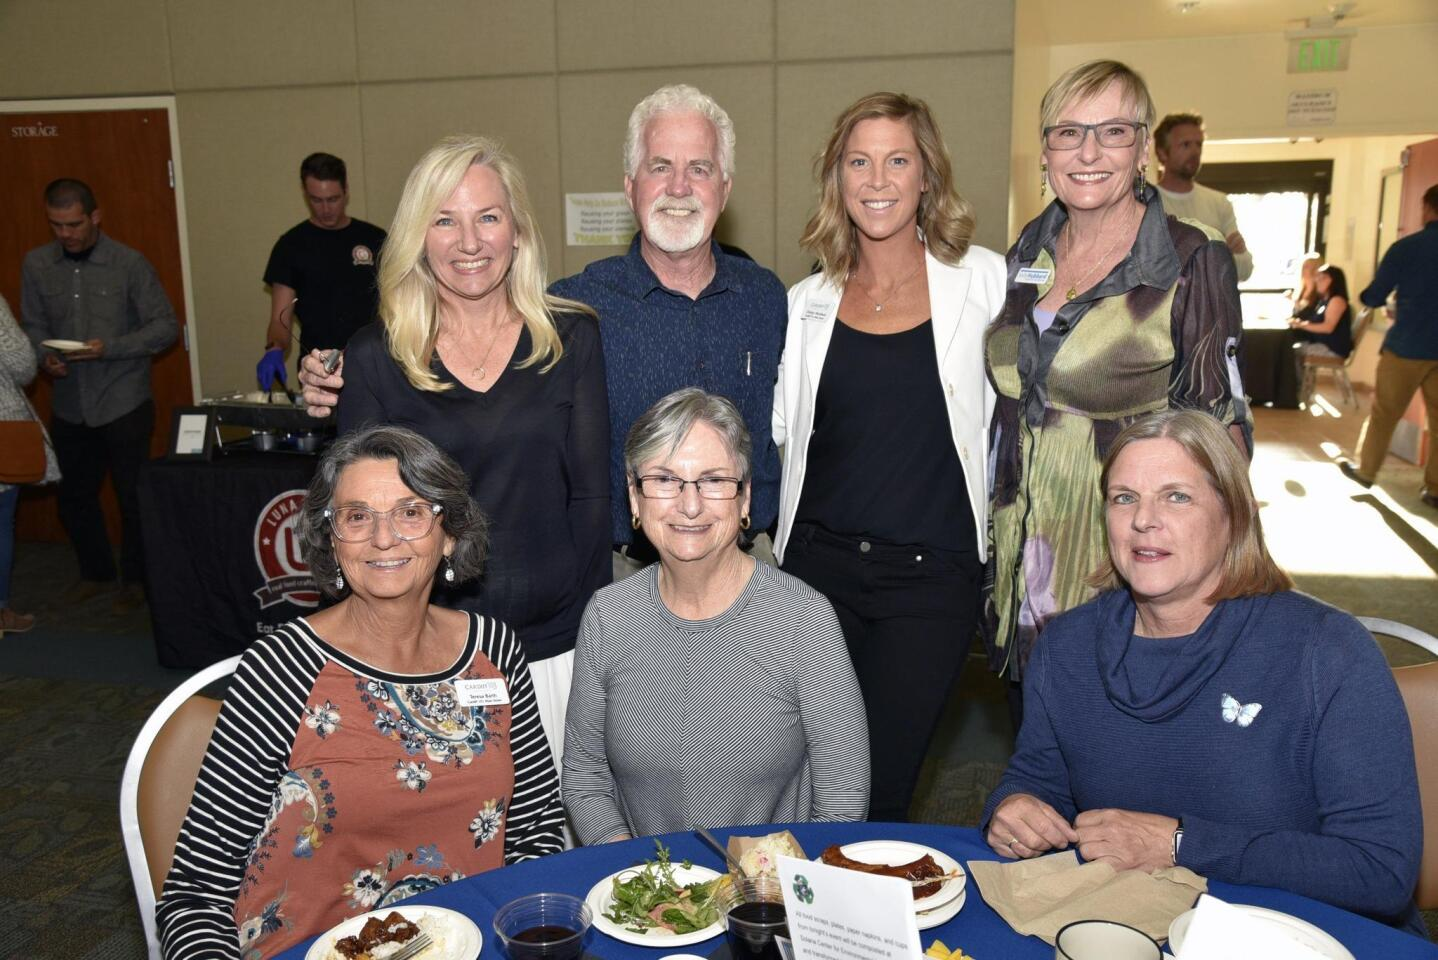 Encinitas State of the City Address